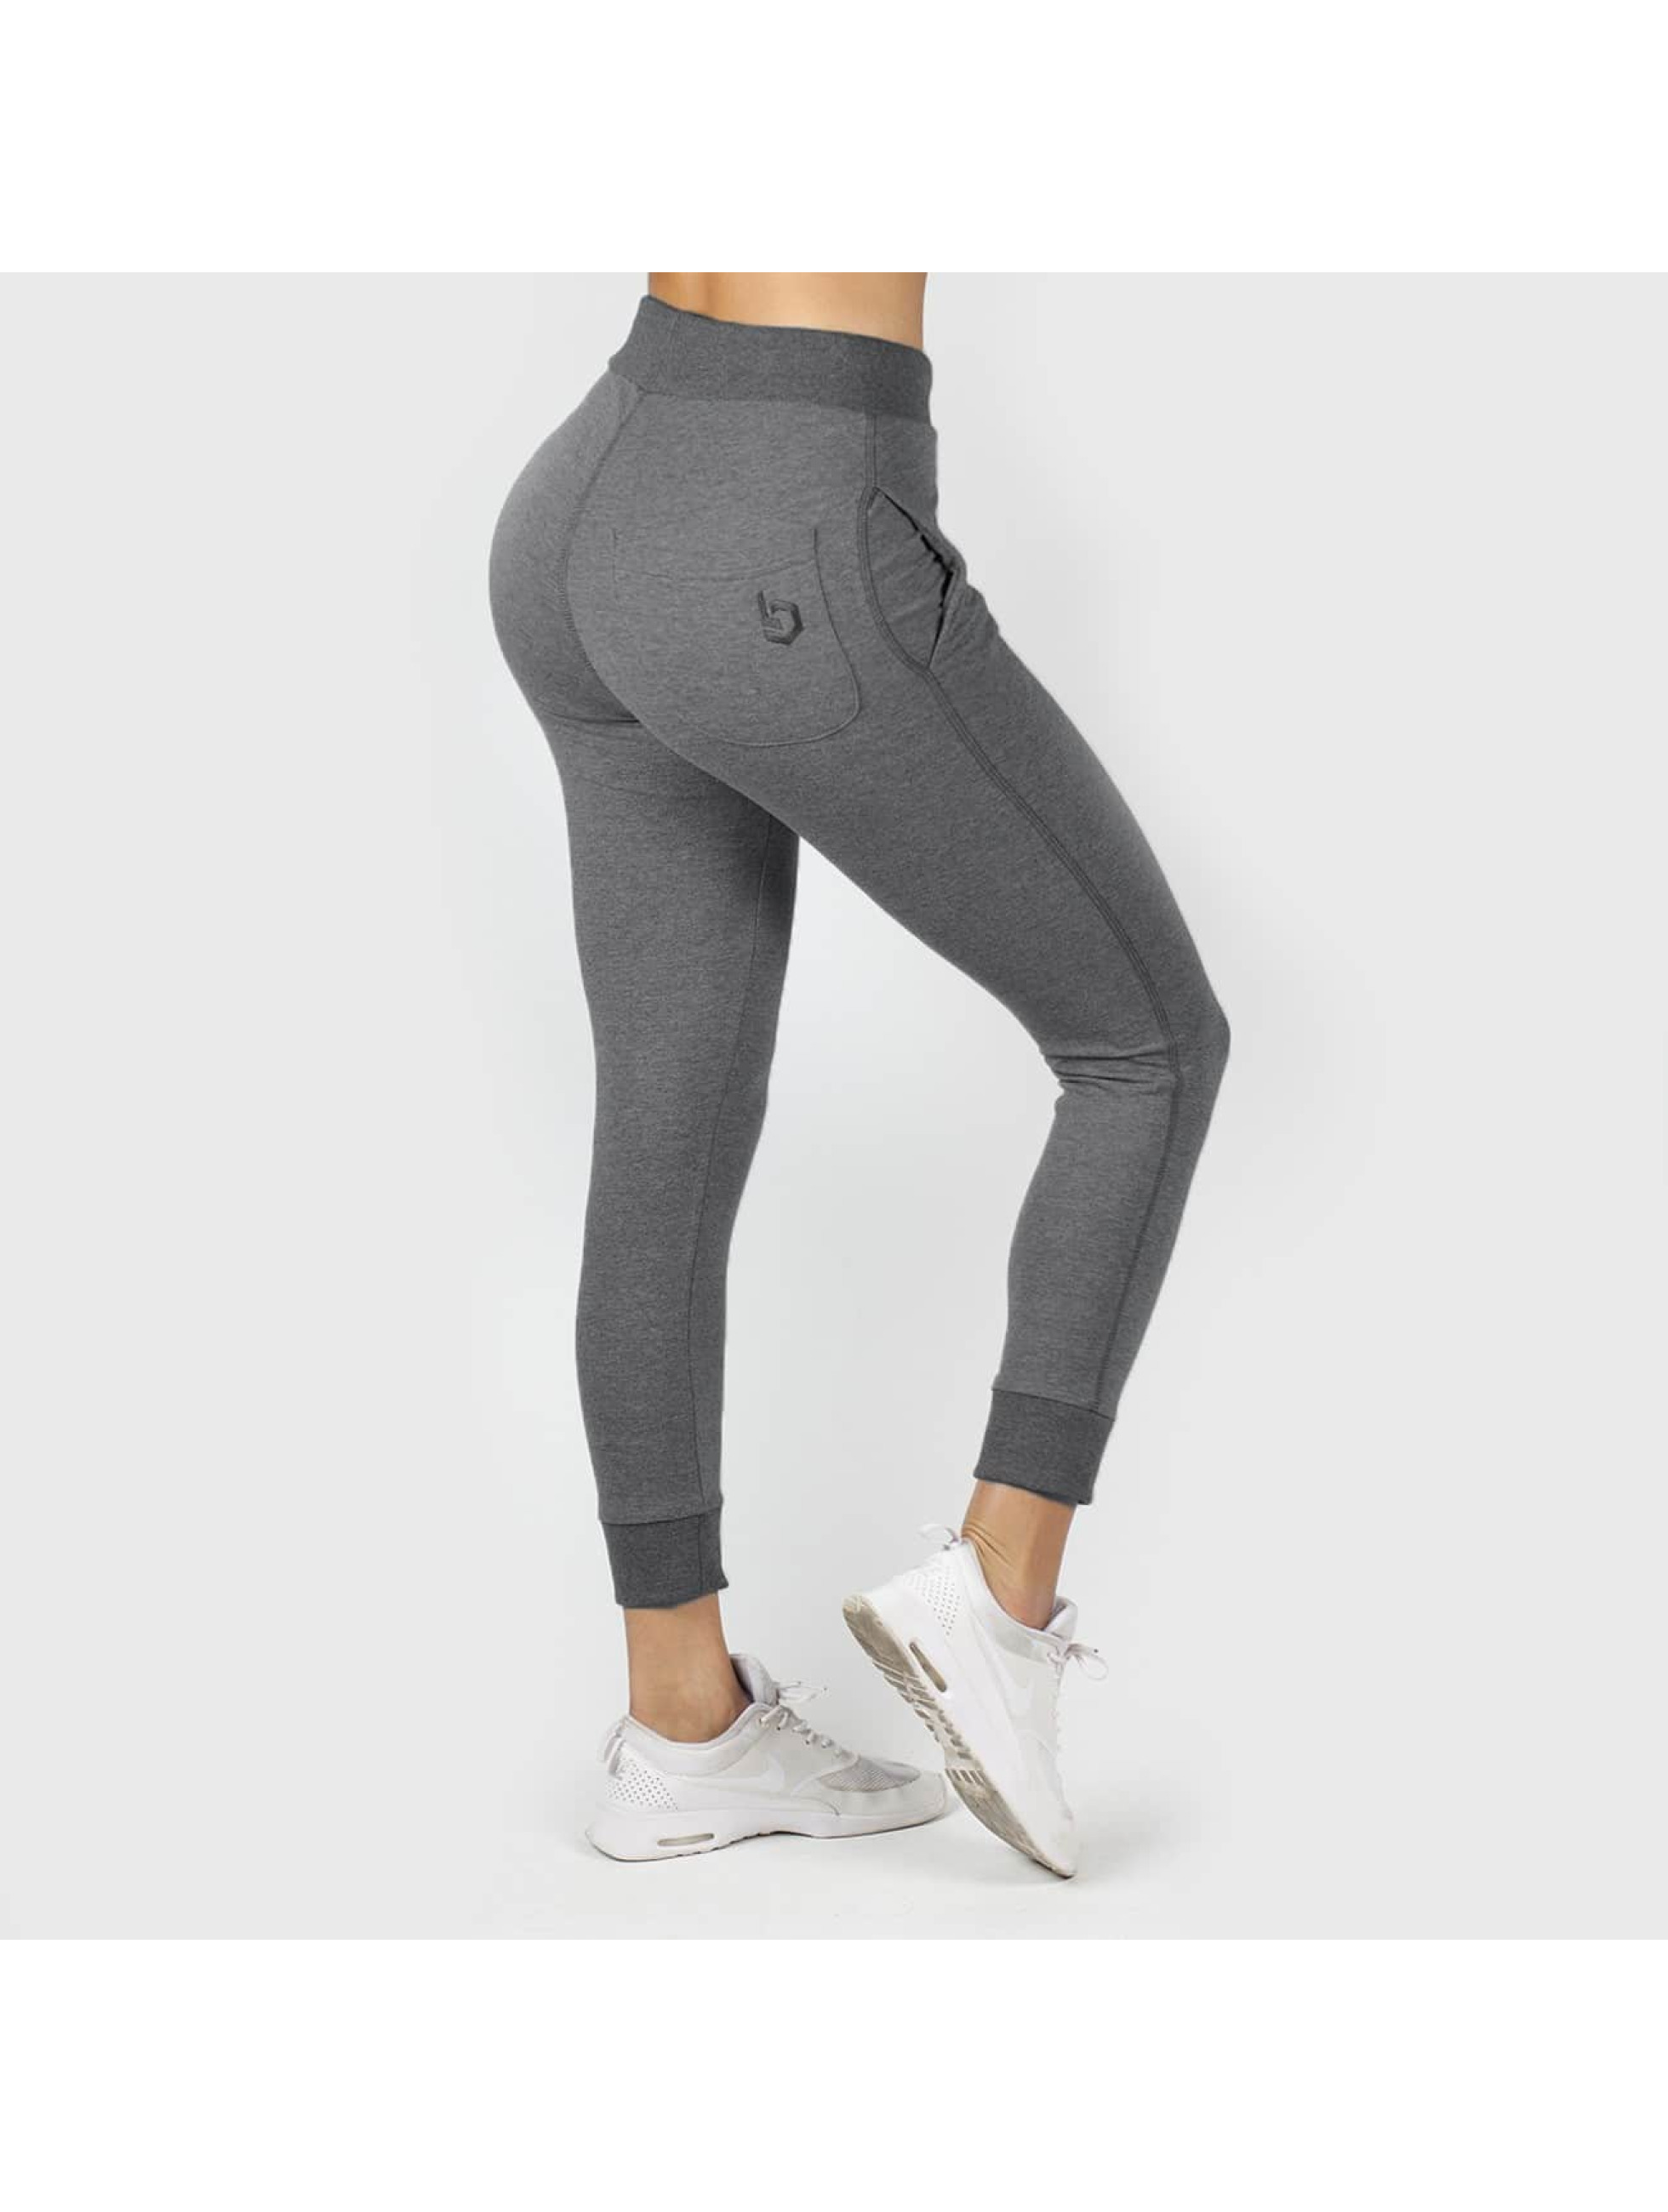 Beyond Limits Legging/Tregging Motion grey